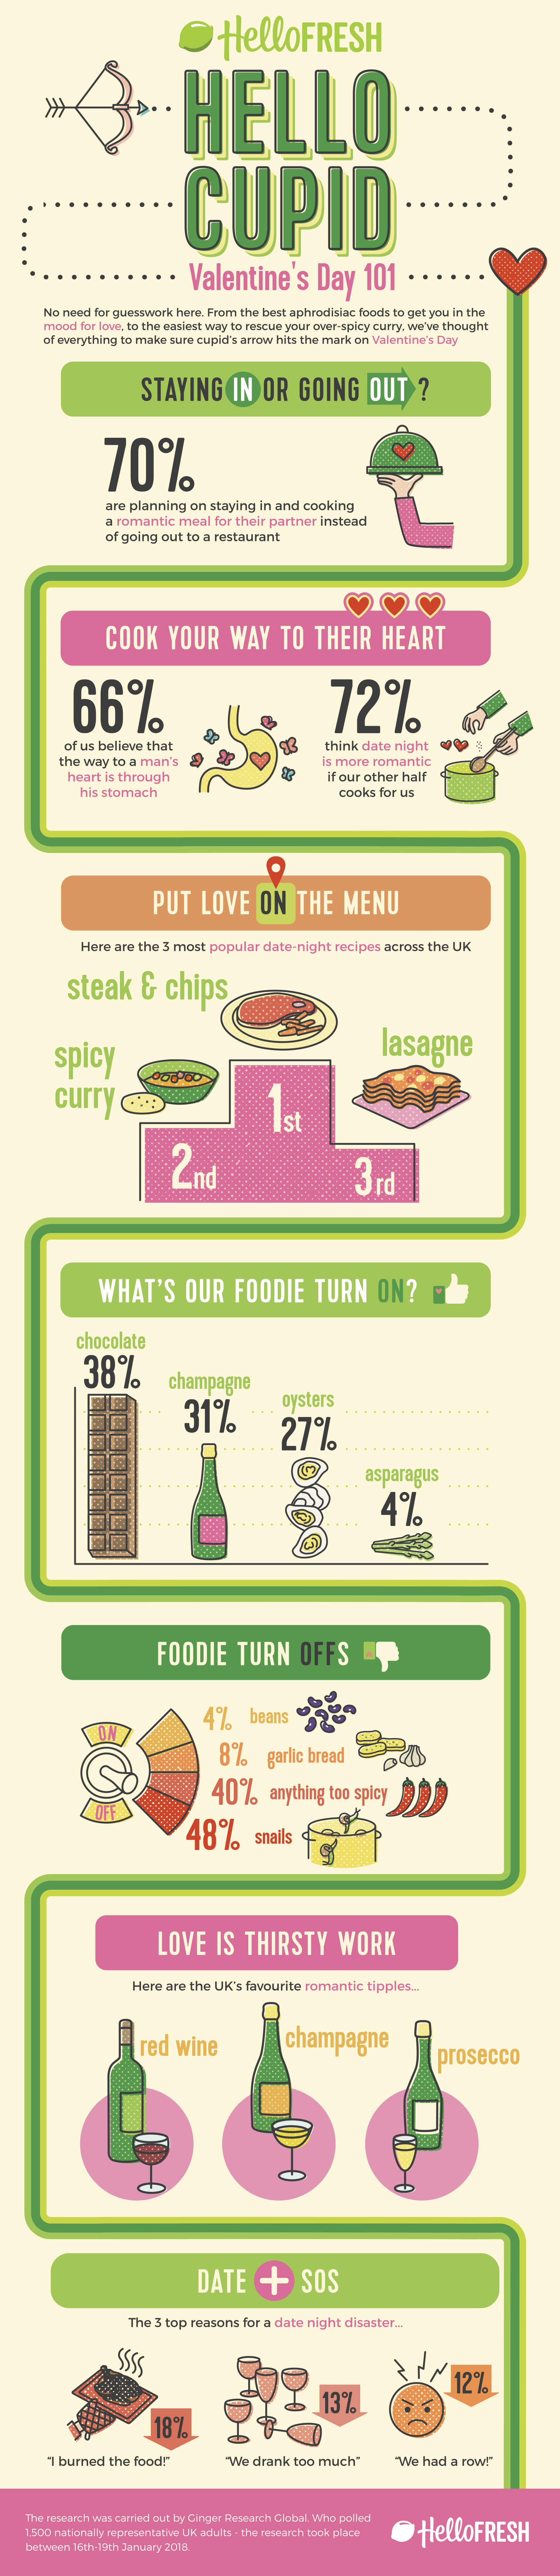 Infographic: Popular Aphrodisiac Foods for British Couples